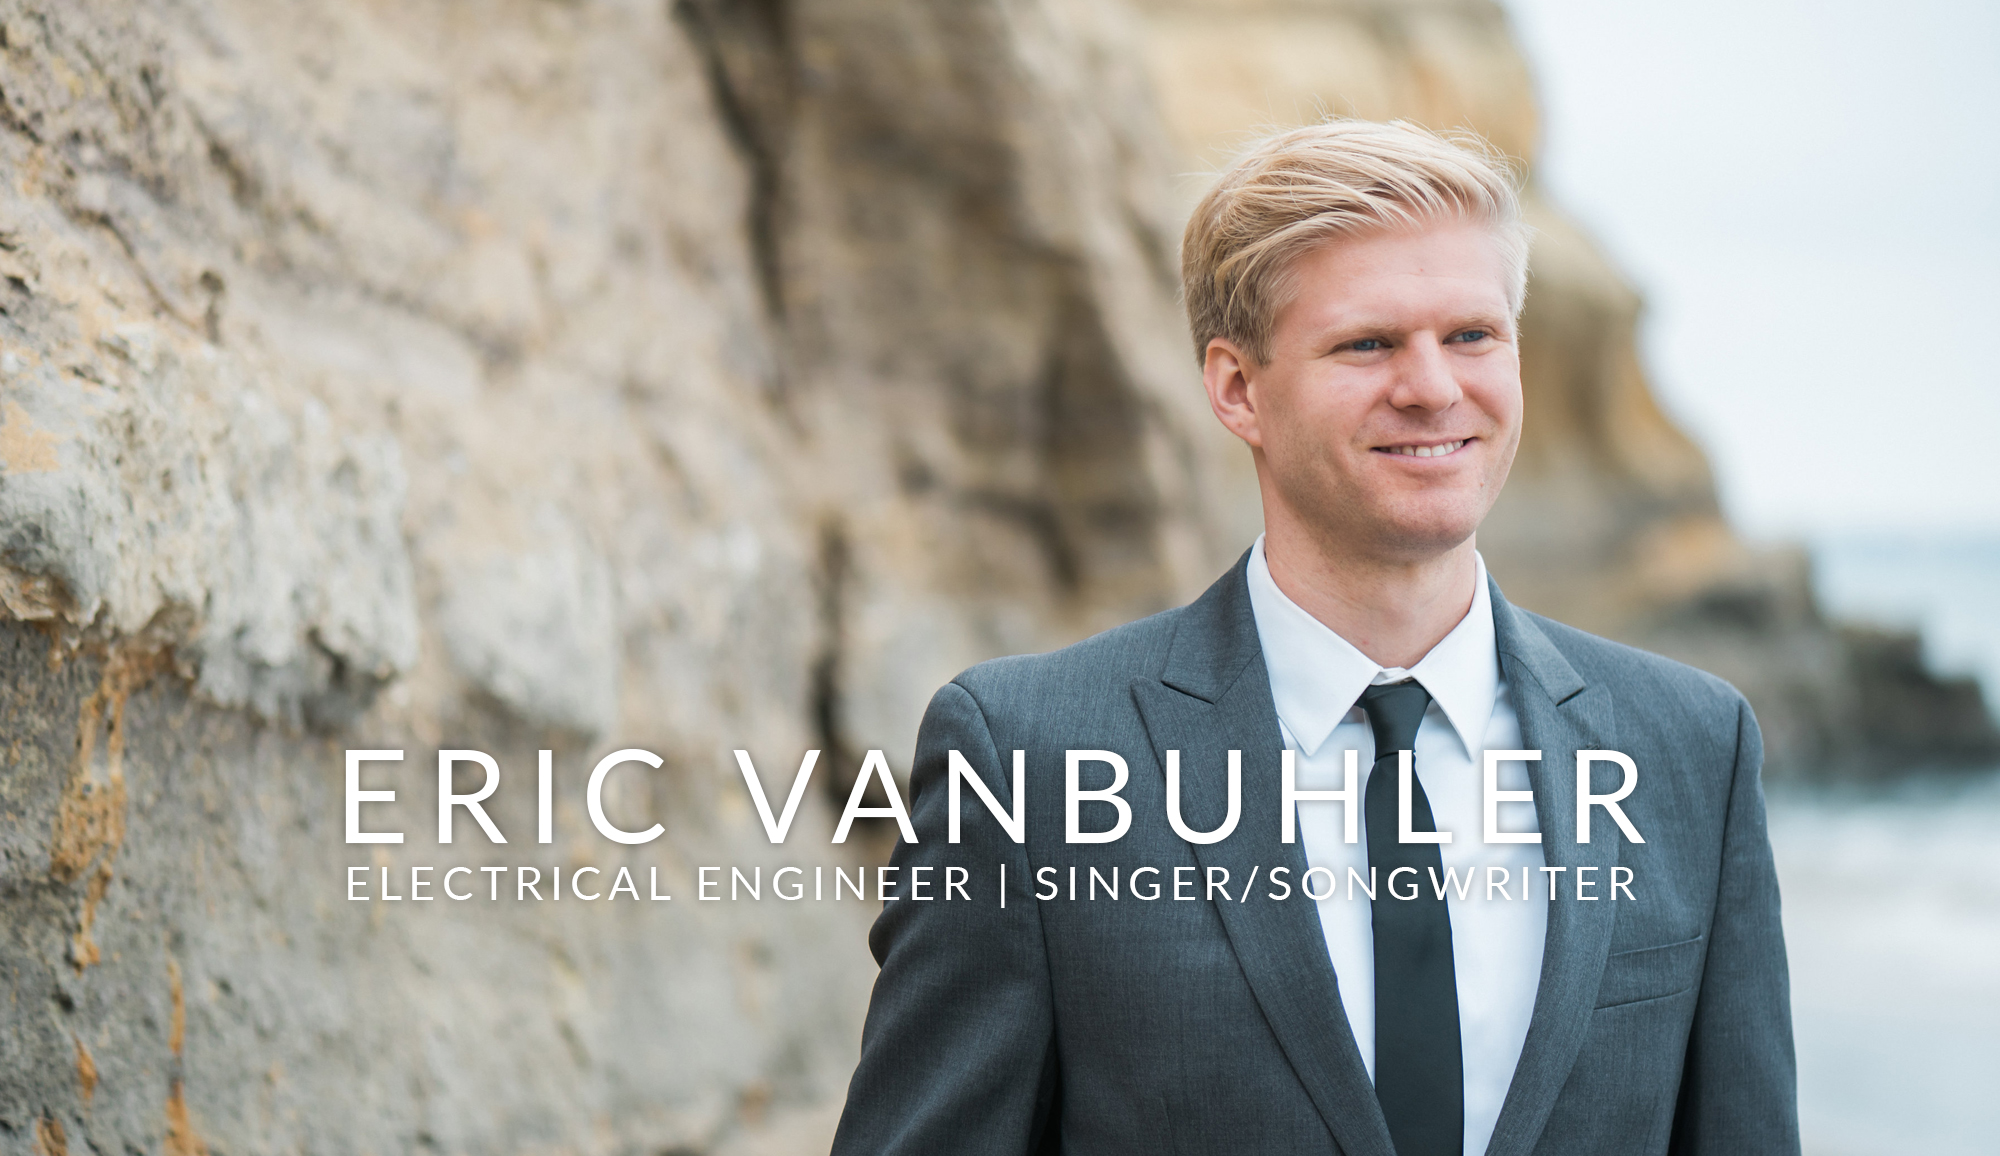 Eric VanBuhler (Credit: Beth Joy Photography)